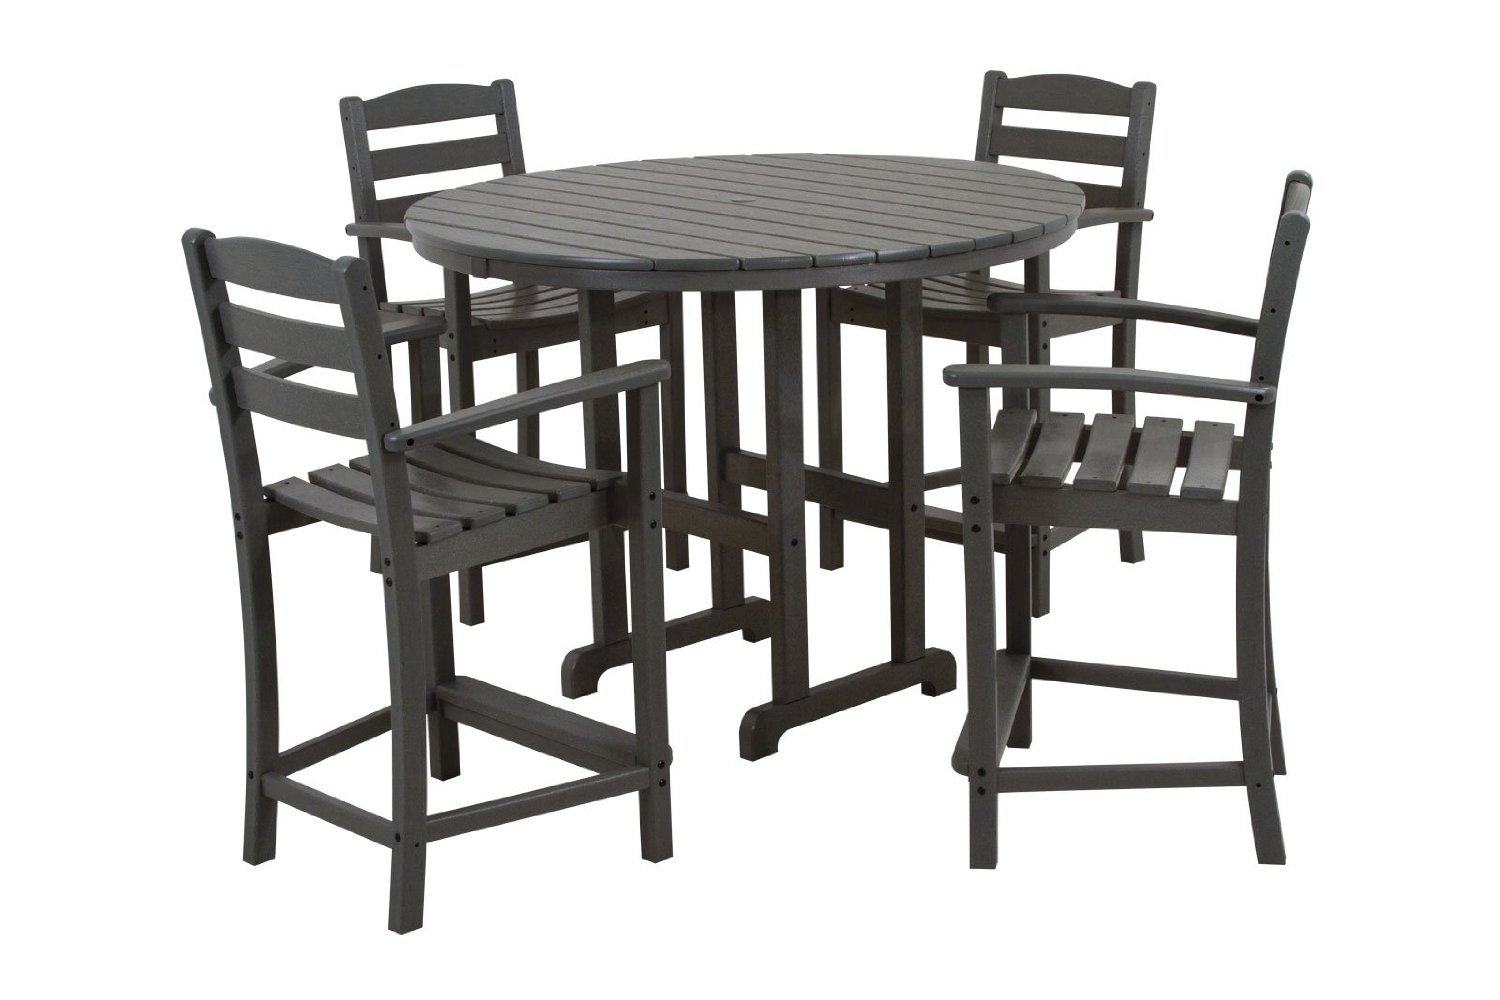 POLYWOOD PWS143-1-GY La Casa Café 5-Piece Counter Set with Table and Chair, Slate Grey